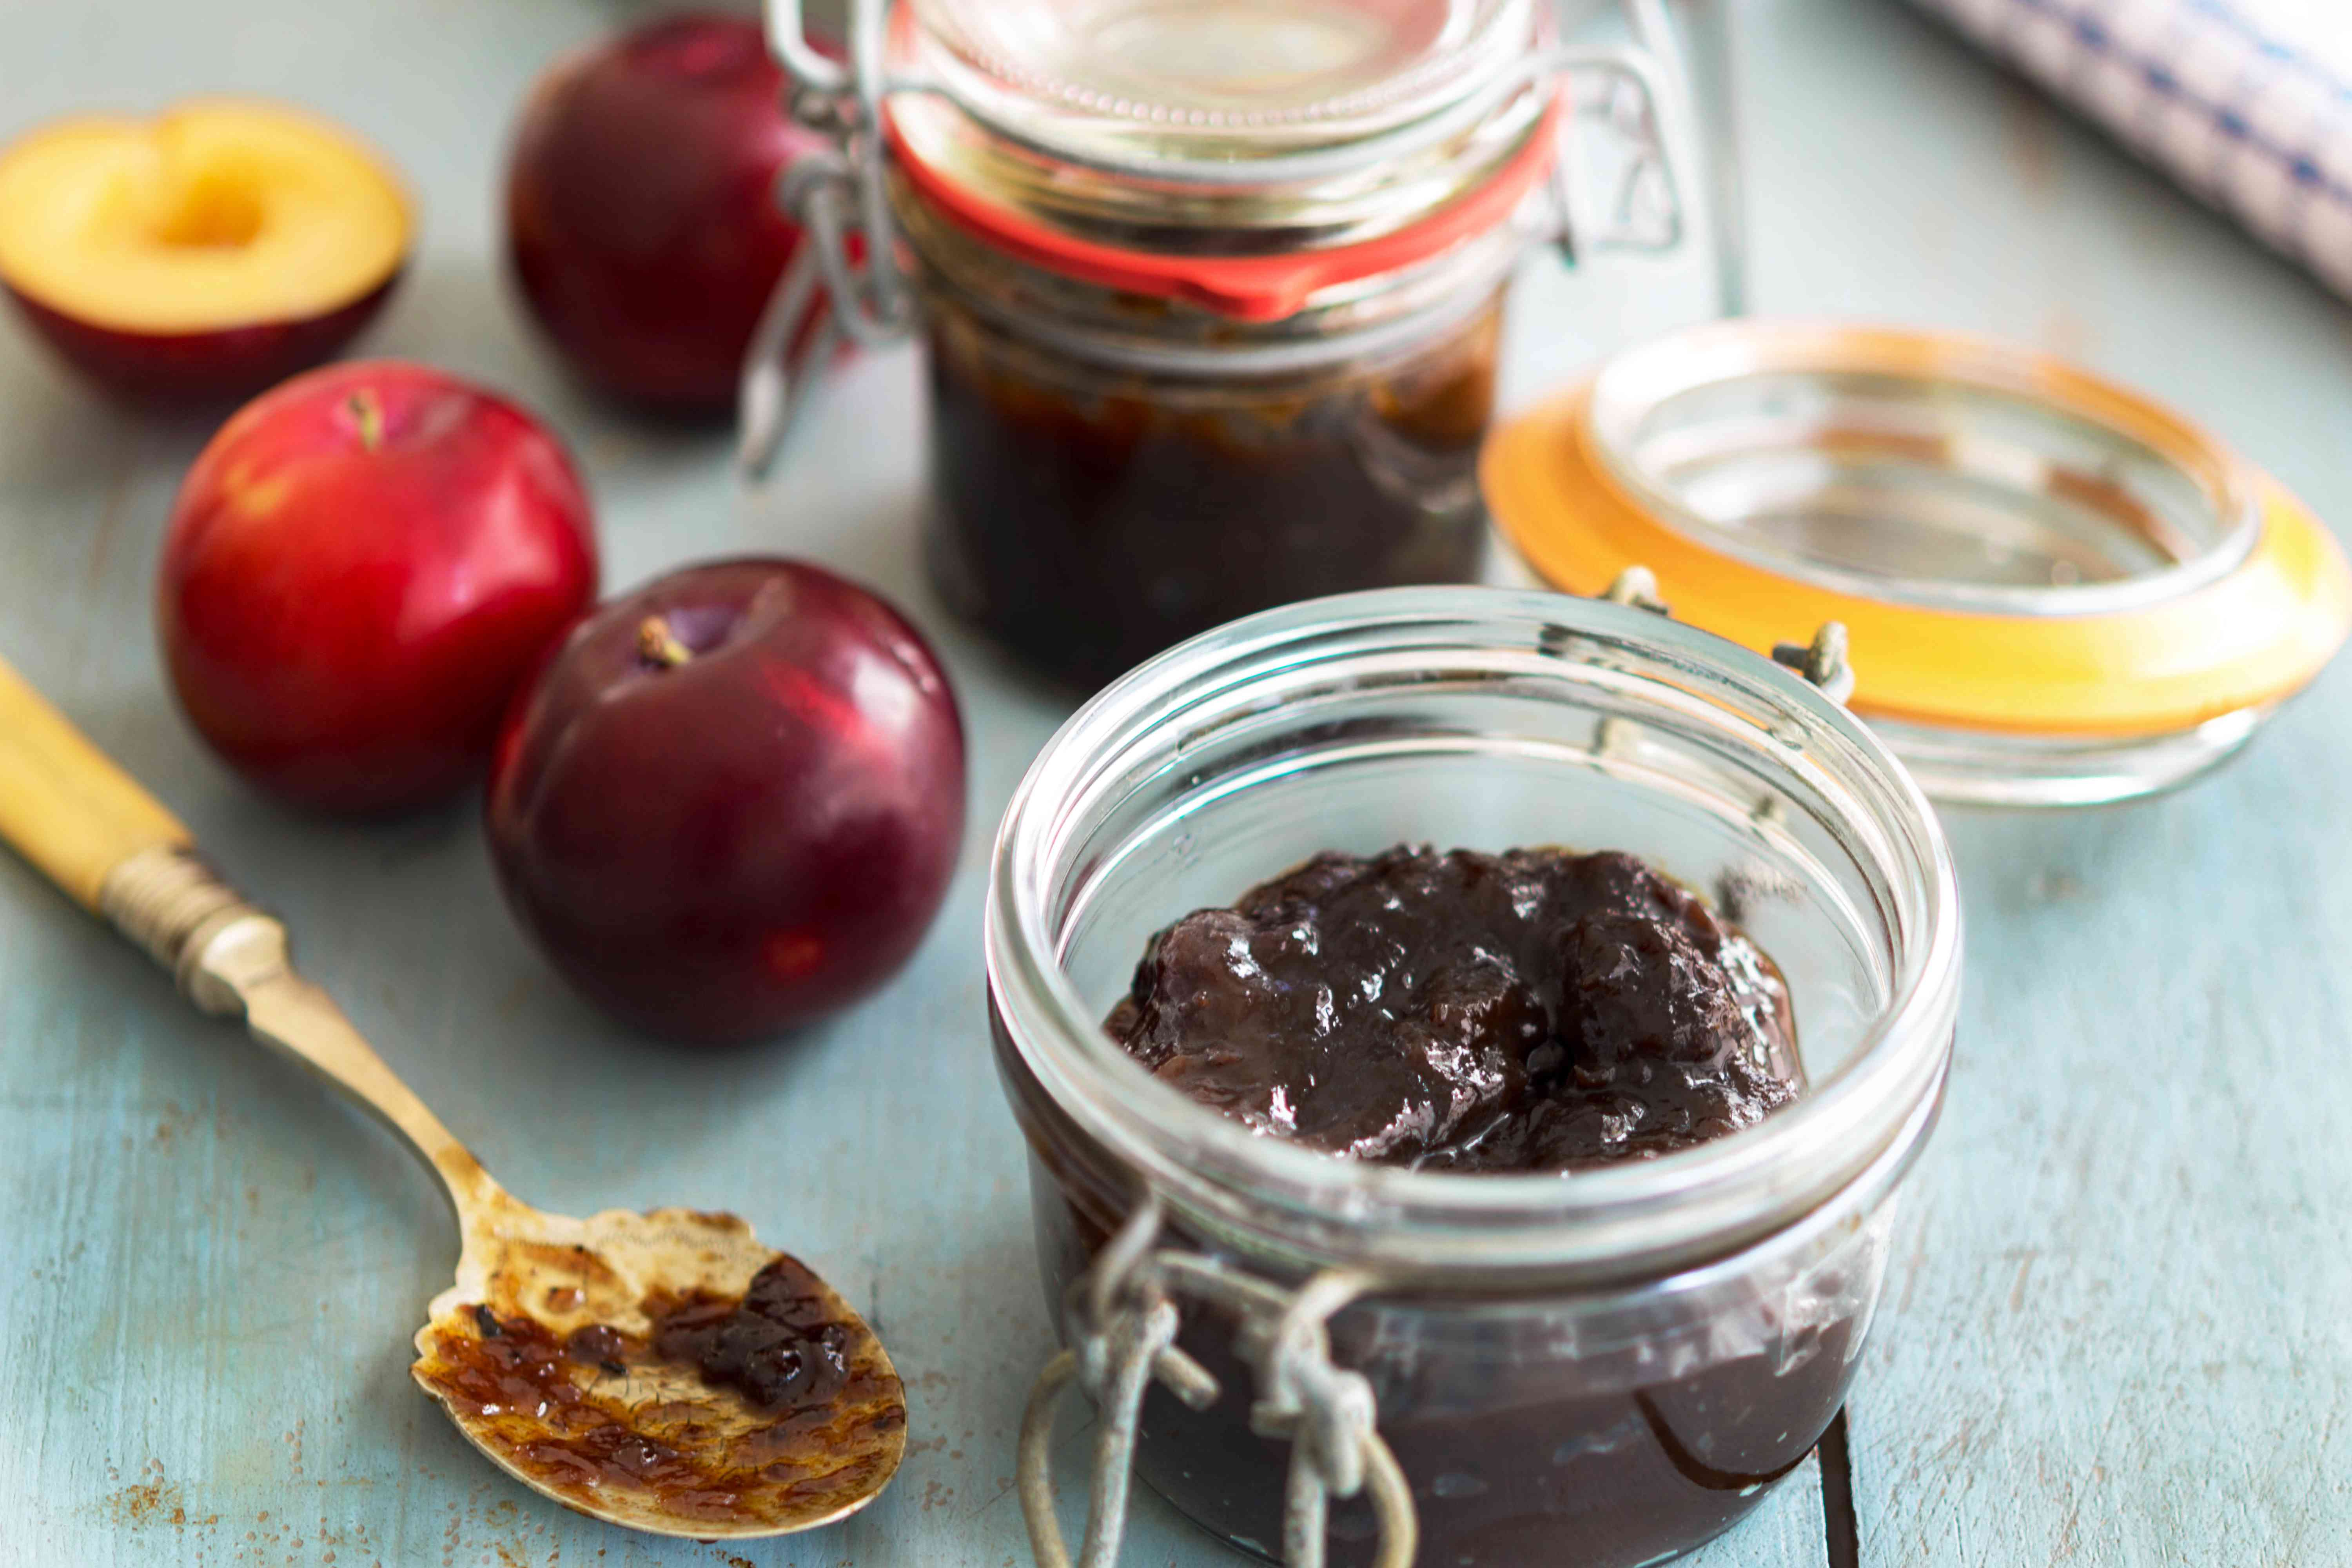 Traditional plum chutney in a canning jar with a side of fresh fruit